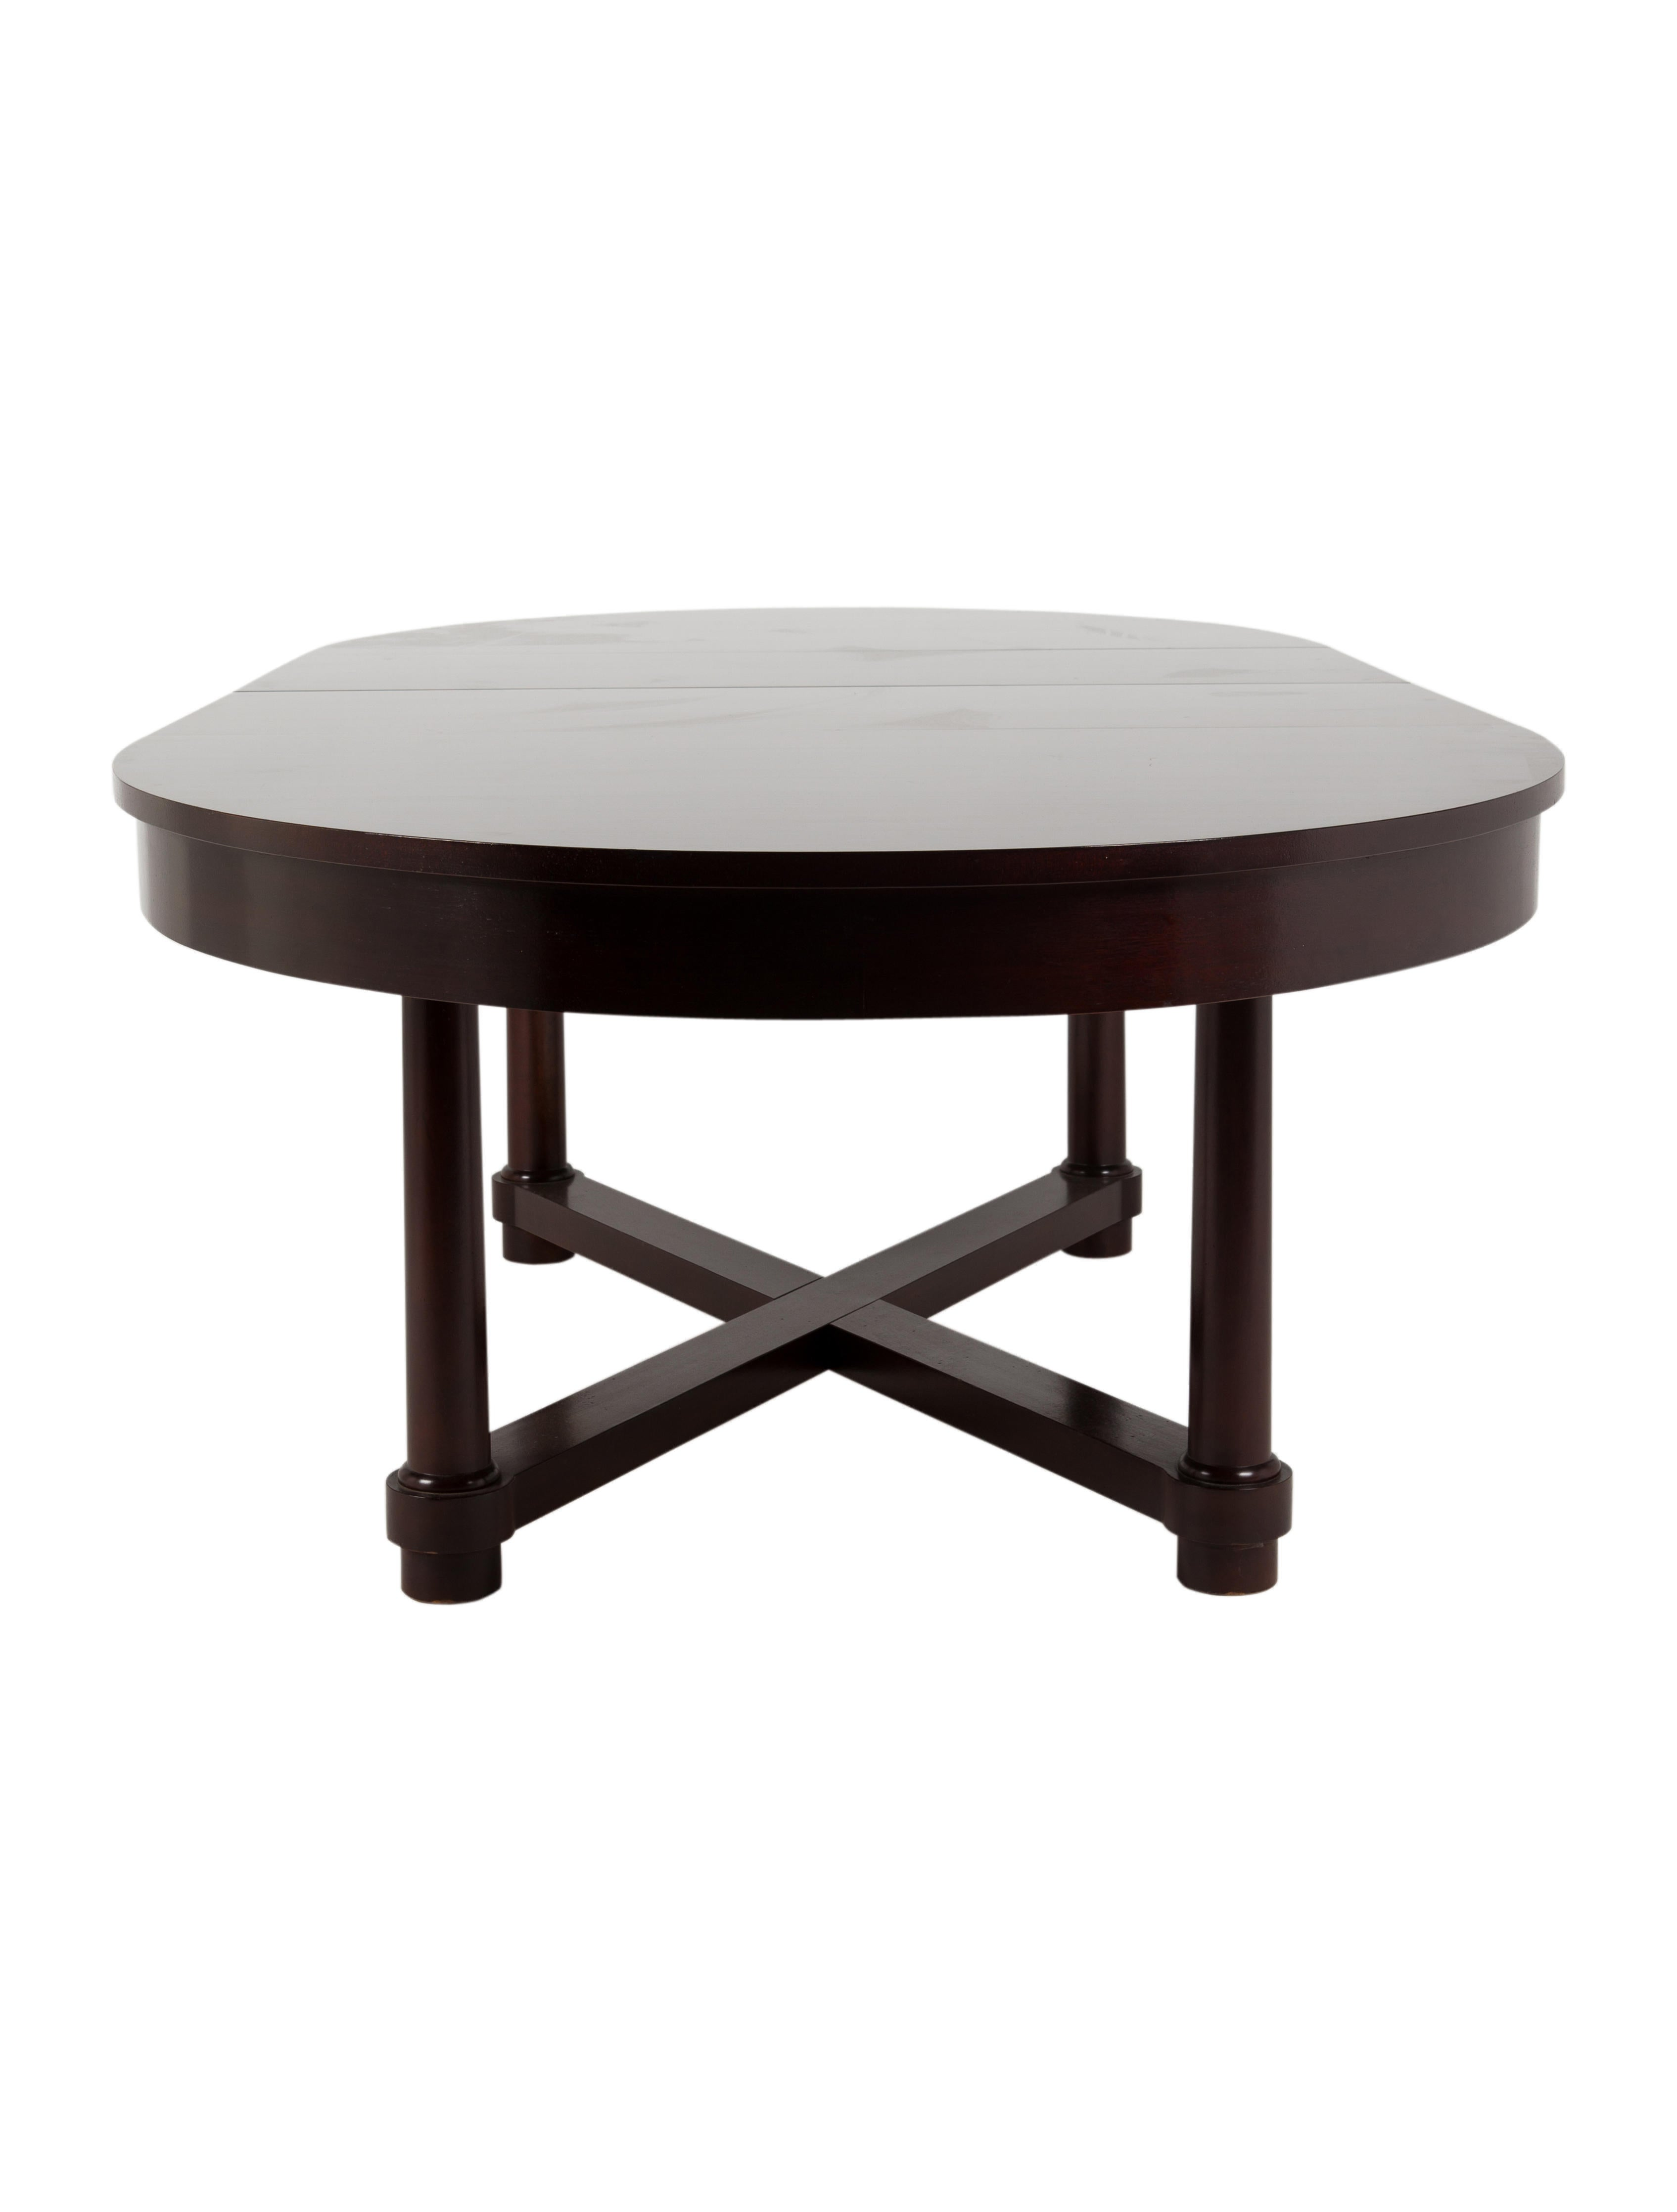 Barbara Barry Oval Dining Table